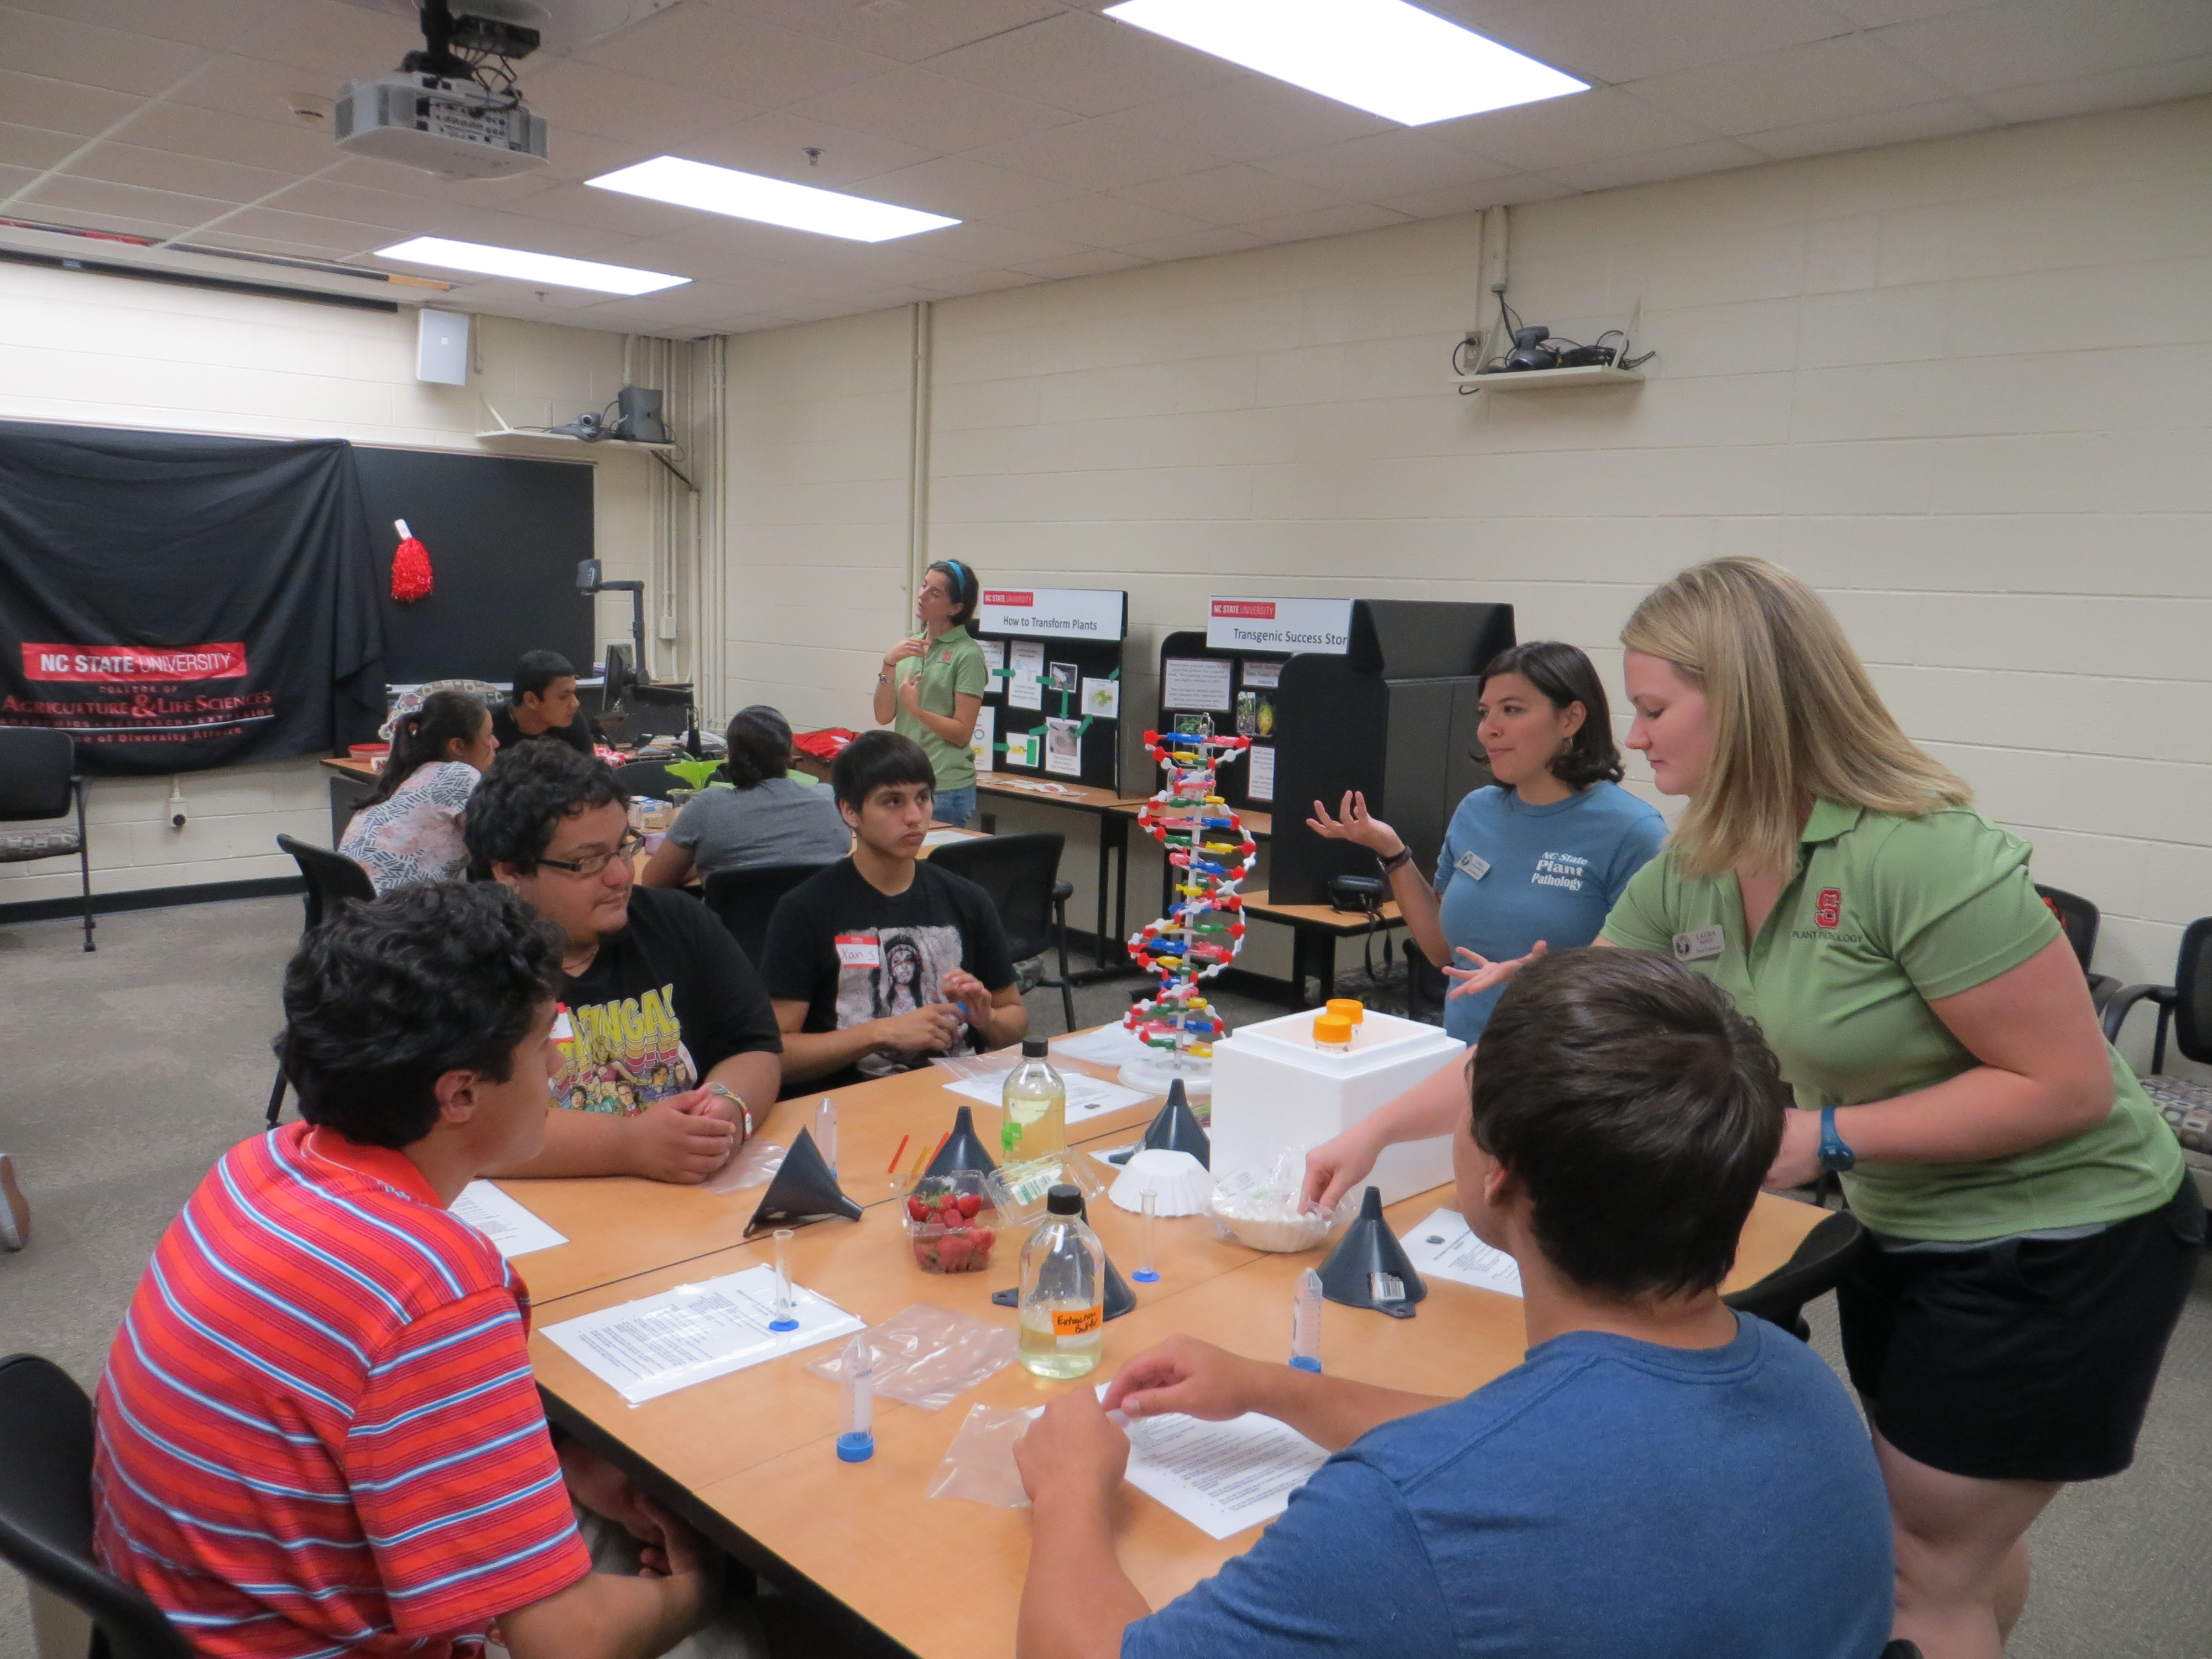 Plant Pathology Graduate Students Emma Lookabaugh and Laura Bostic teach high school students about DNA before diving into a strawberry DNA extraction. Photo Credit: Alyssa Koehler.